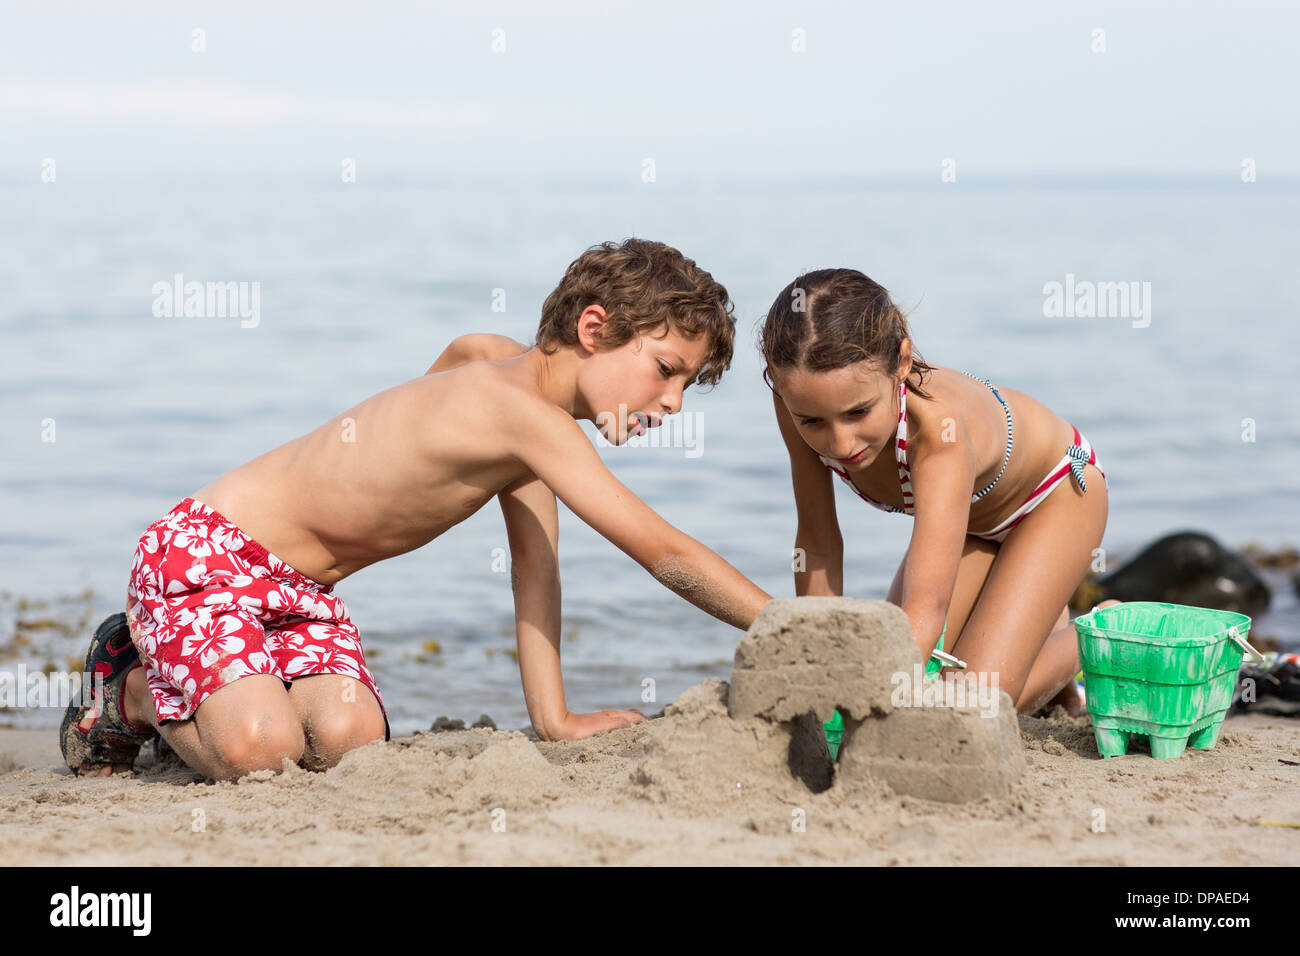 Brother and sister on beach building sandcastle - Stock Image